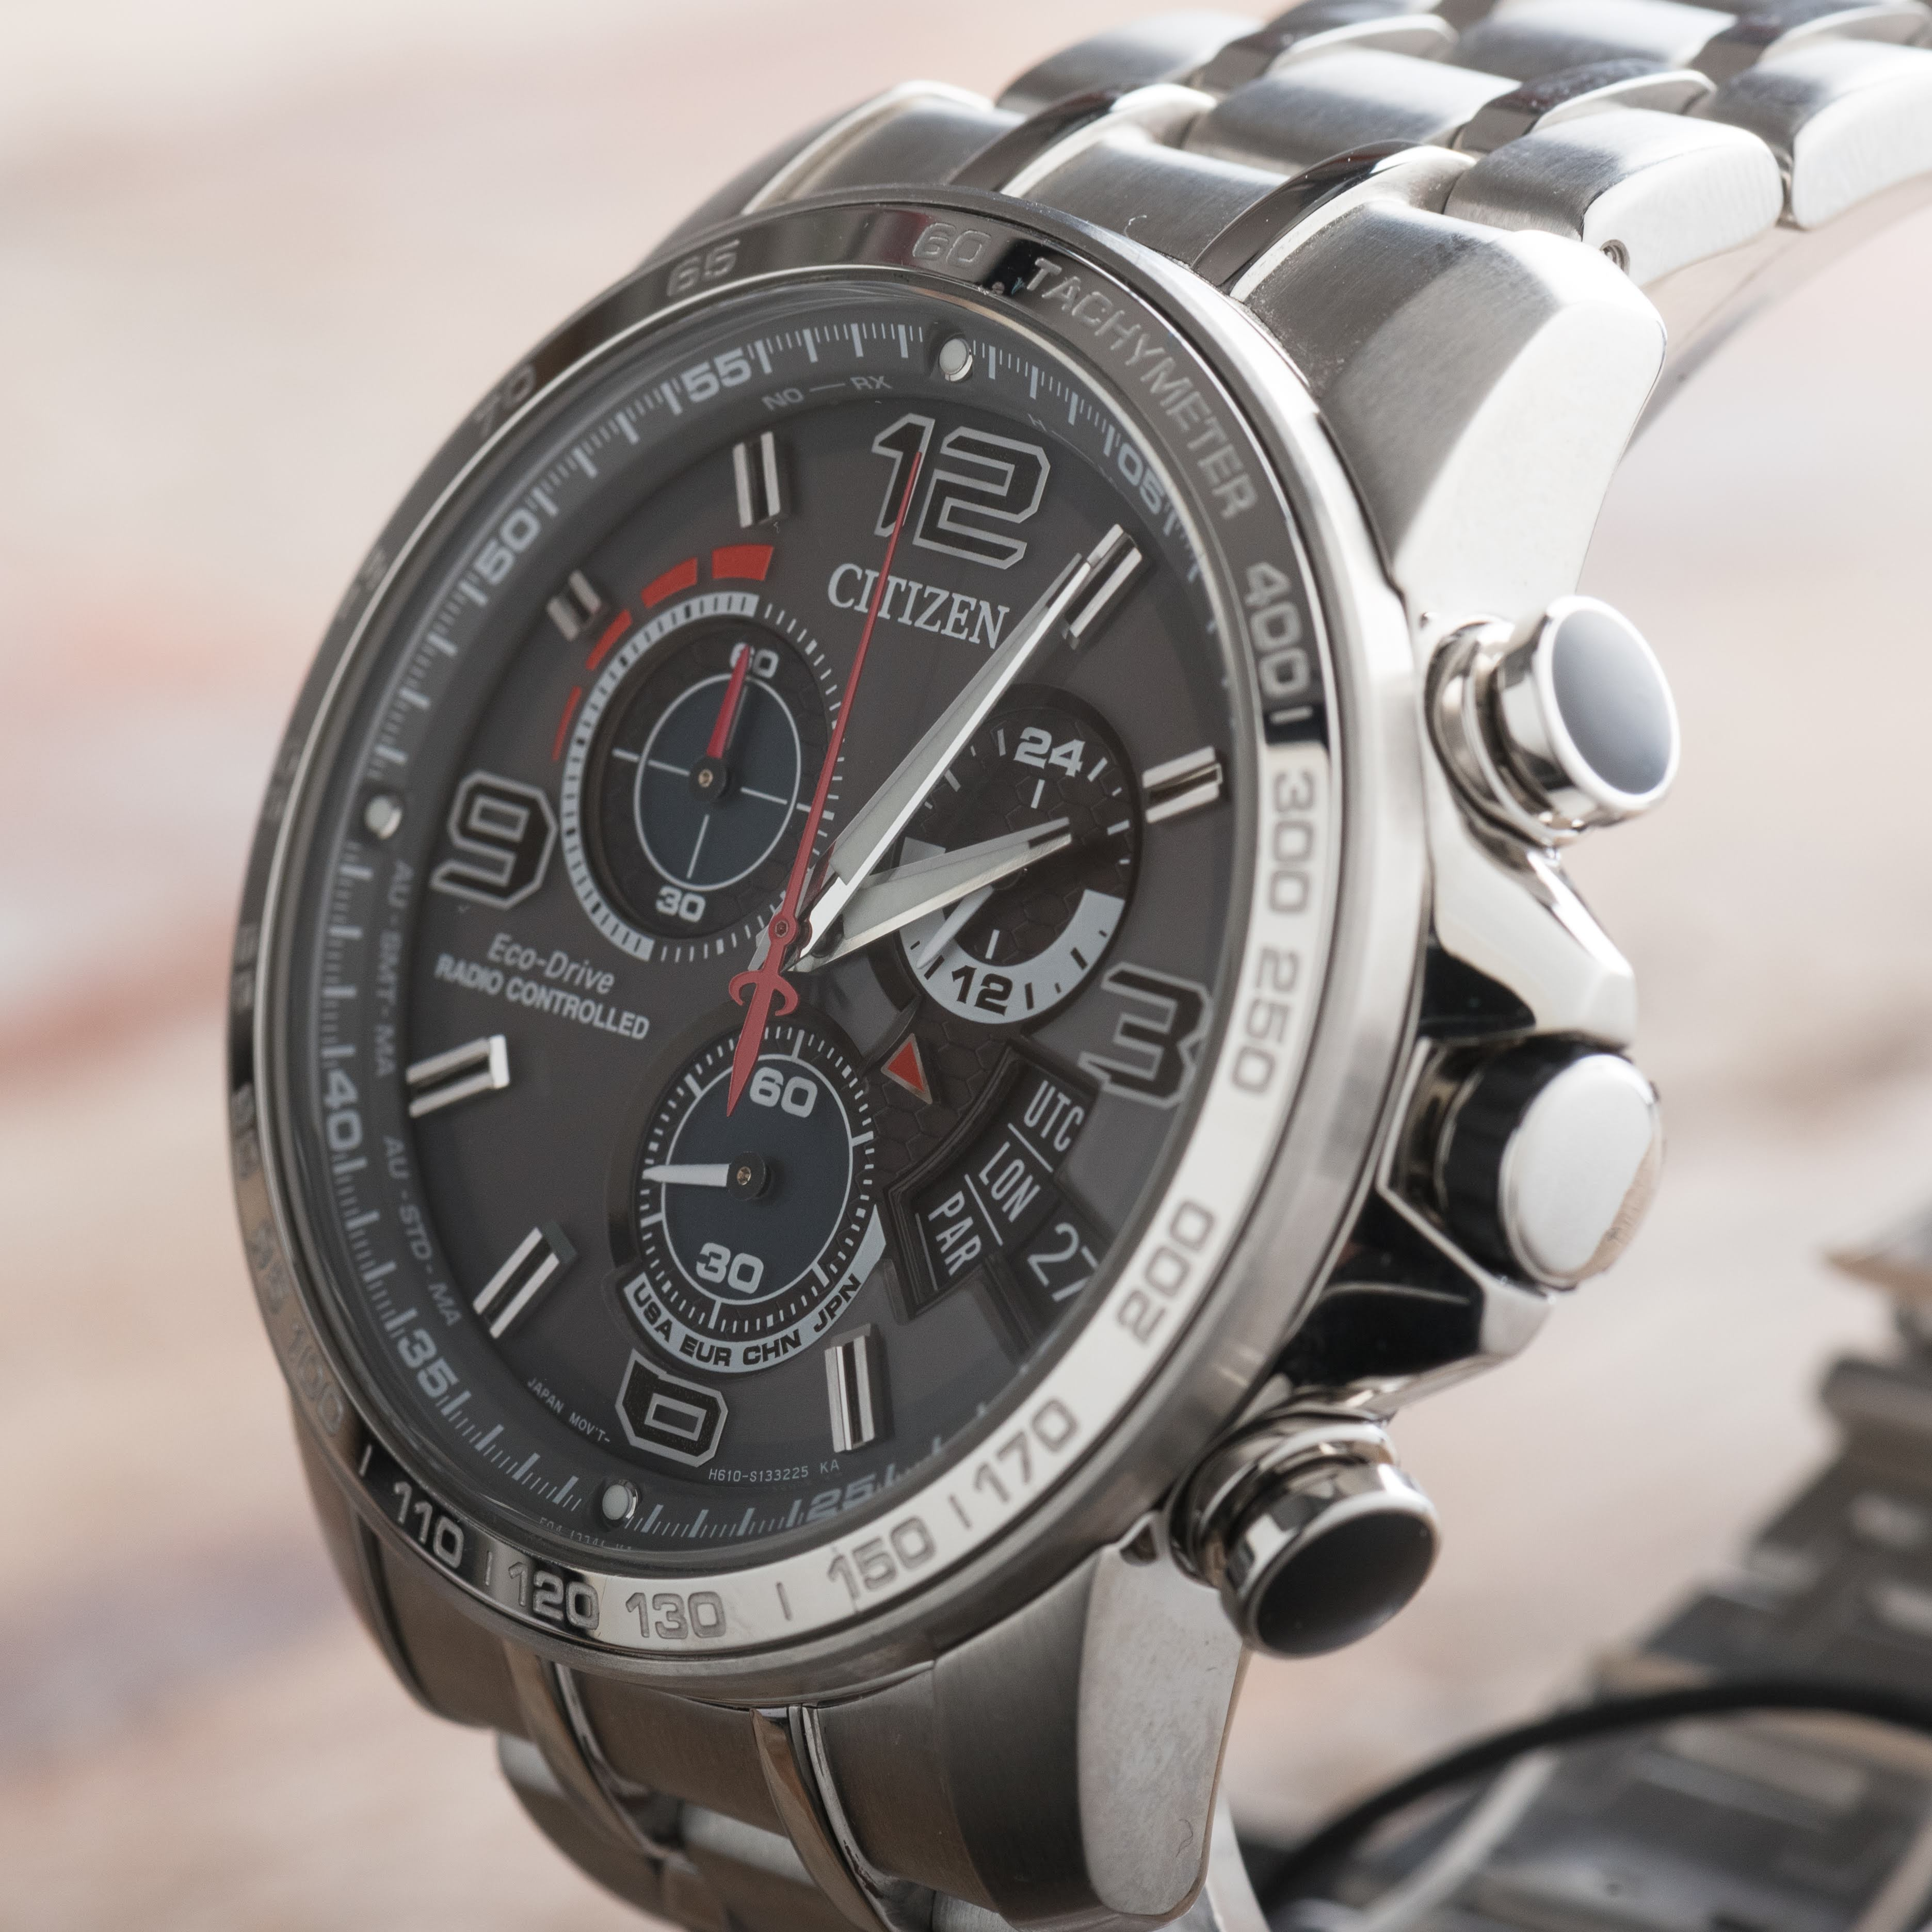 Citizen Chrono Time A-T Radio Controlled Chronograph Day Date Watch BY0100-51H